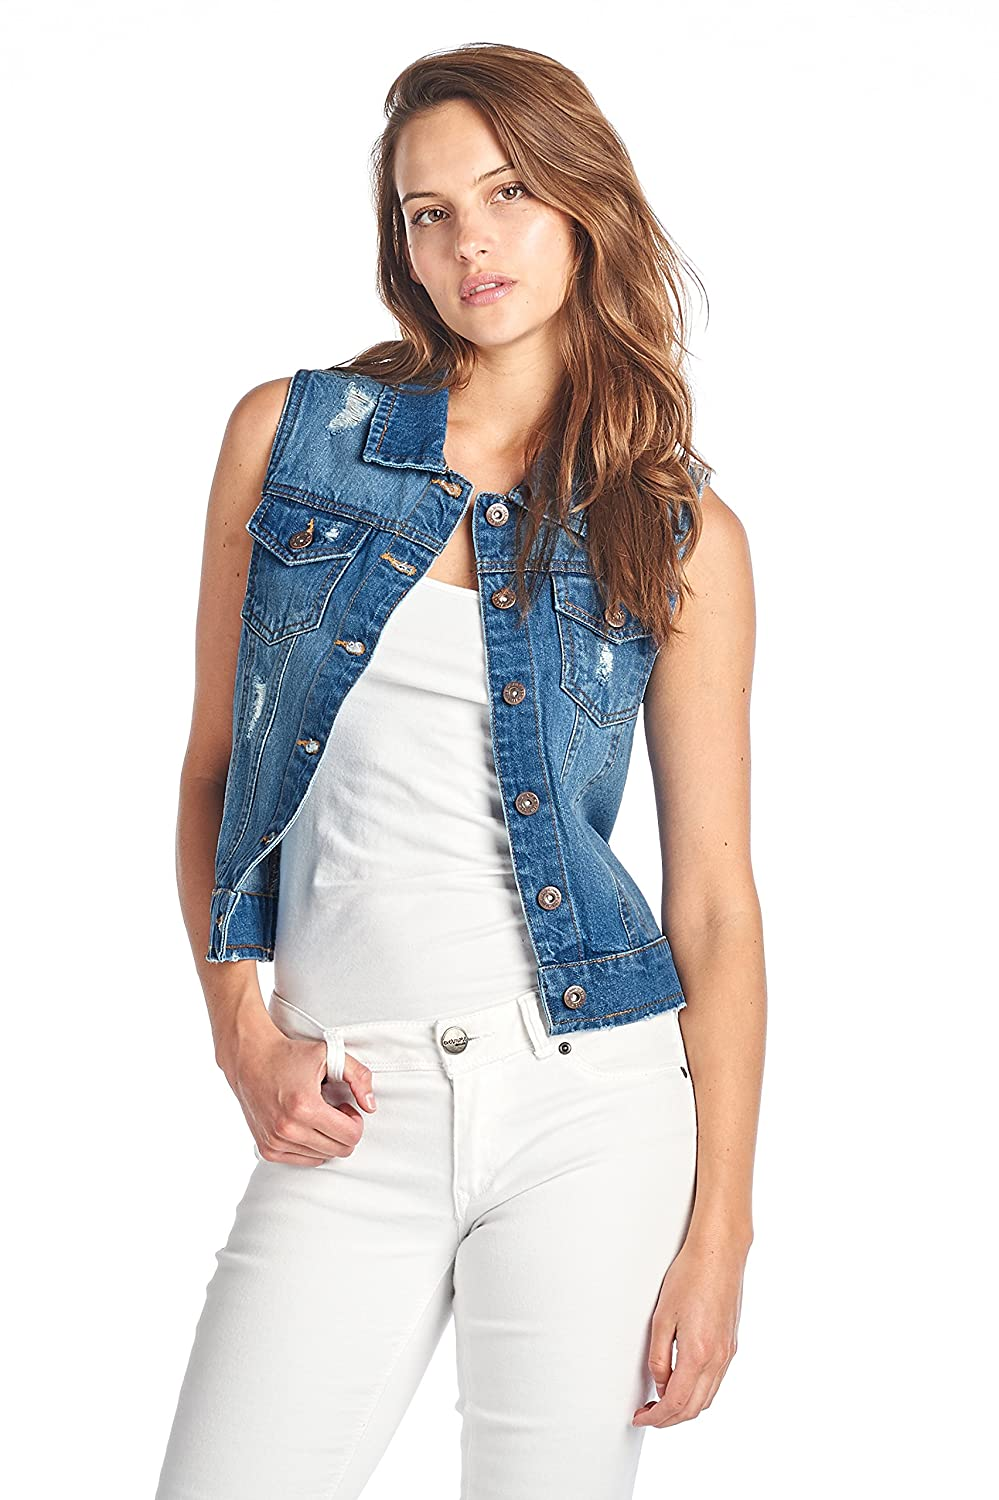 0cad0bede3 Blue Age Womens Destroyed Denim Jean Jackets - Our Jackets feature a  variety of Ripped and Distressed denim designs